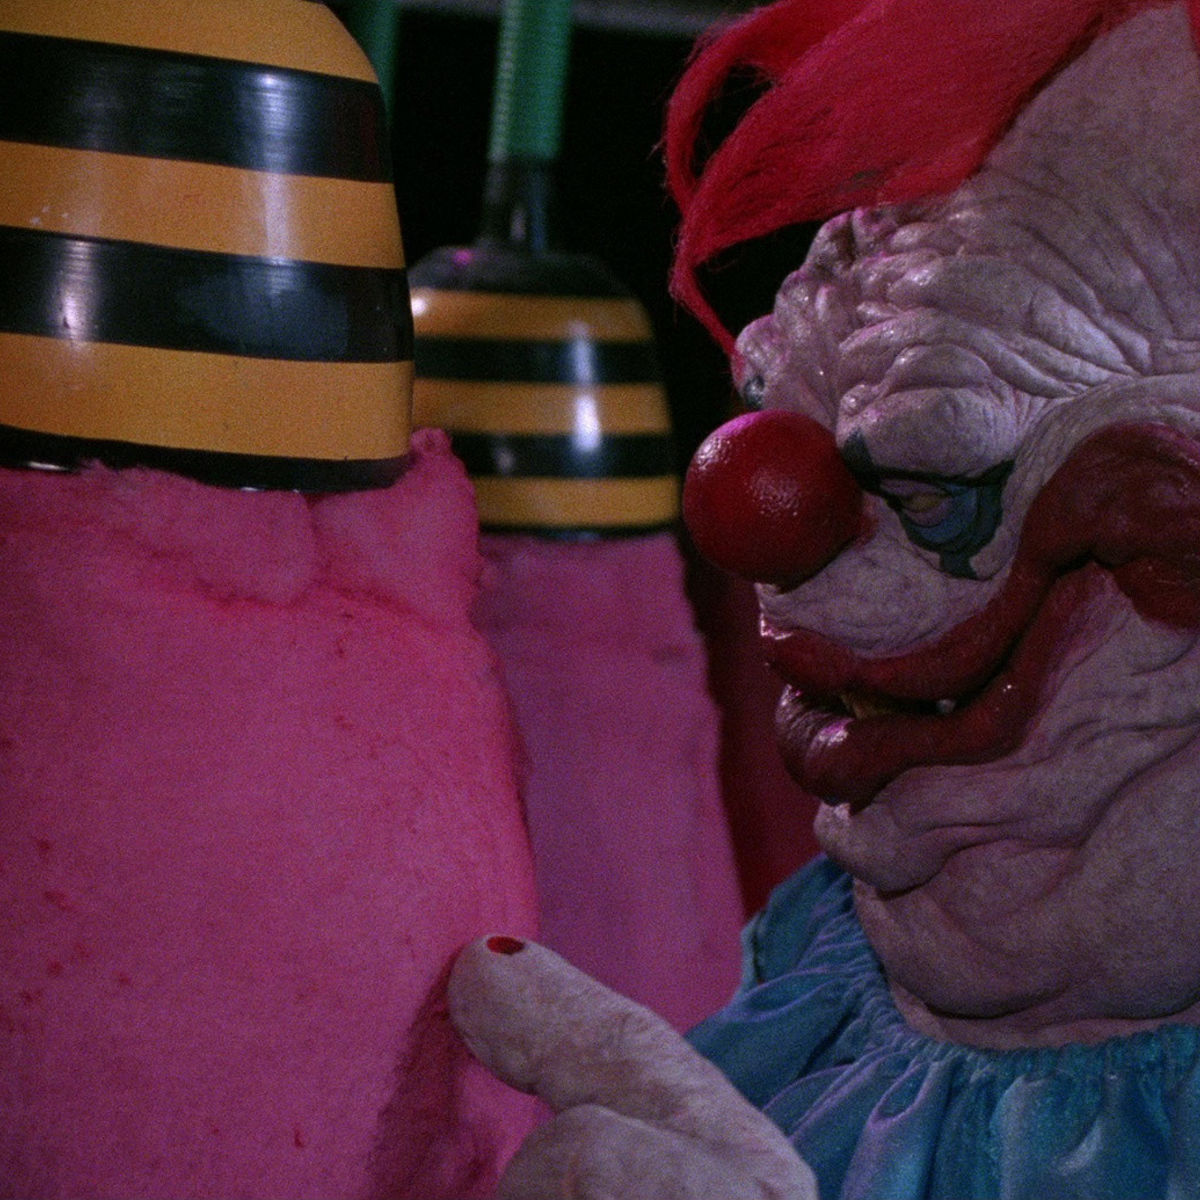 killer_klowns_2.jpg